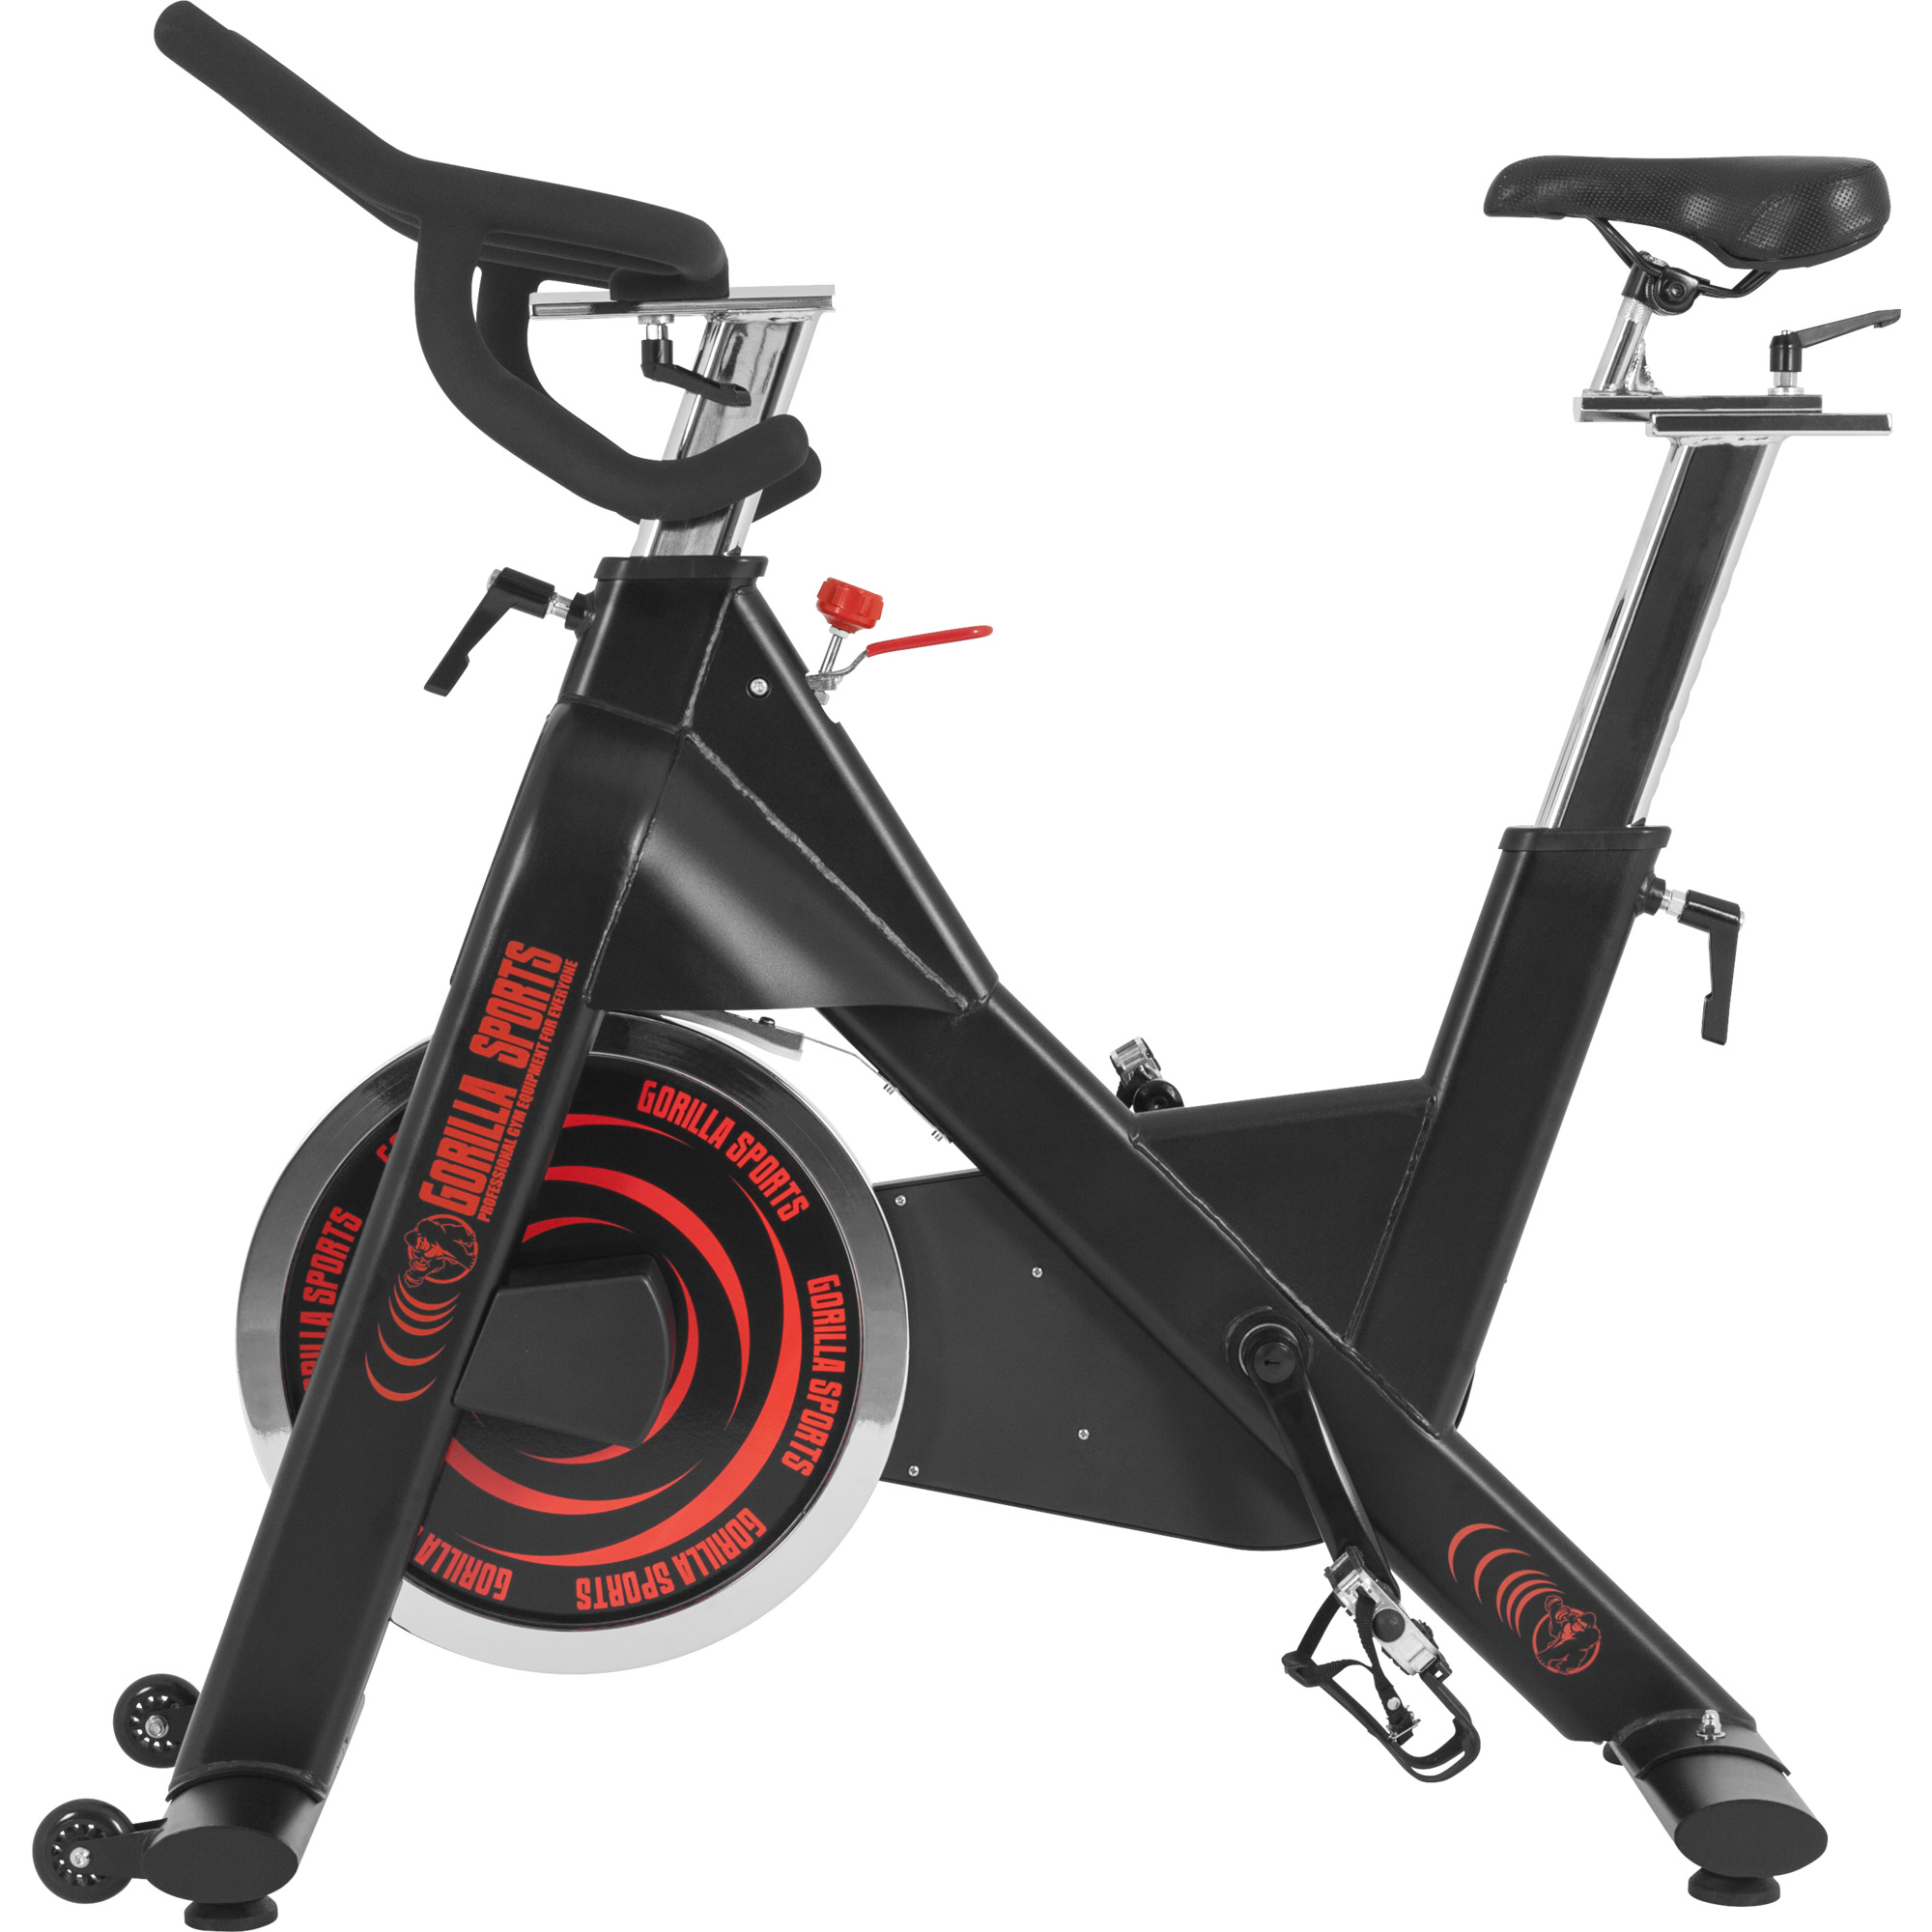 V lo d 39 appartement gorilla sports indoor cycling bike 10000619 - Velo d appartement biking ...